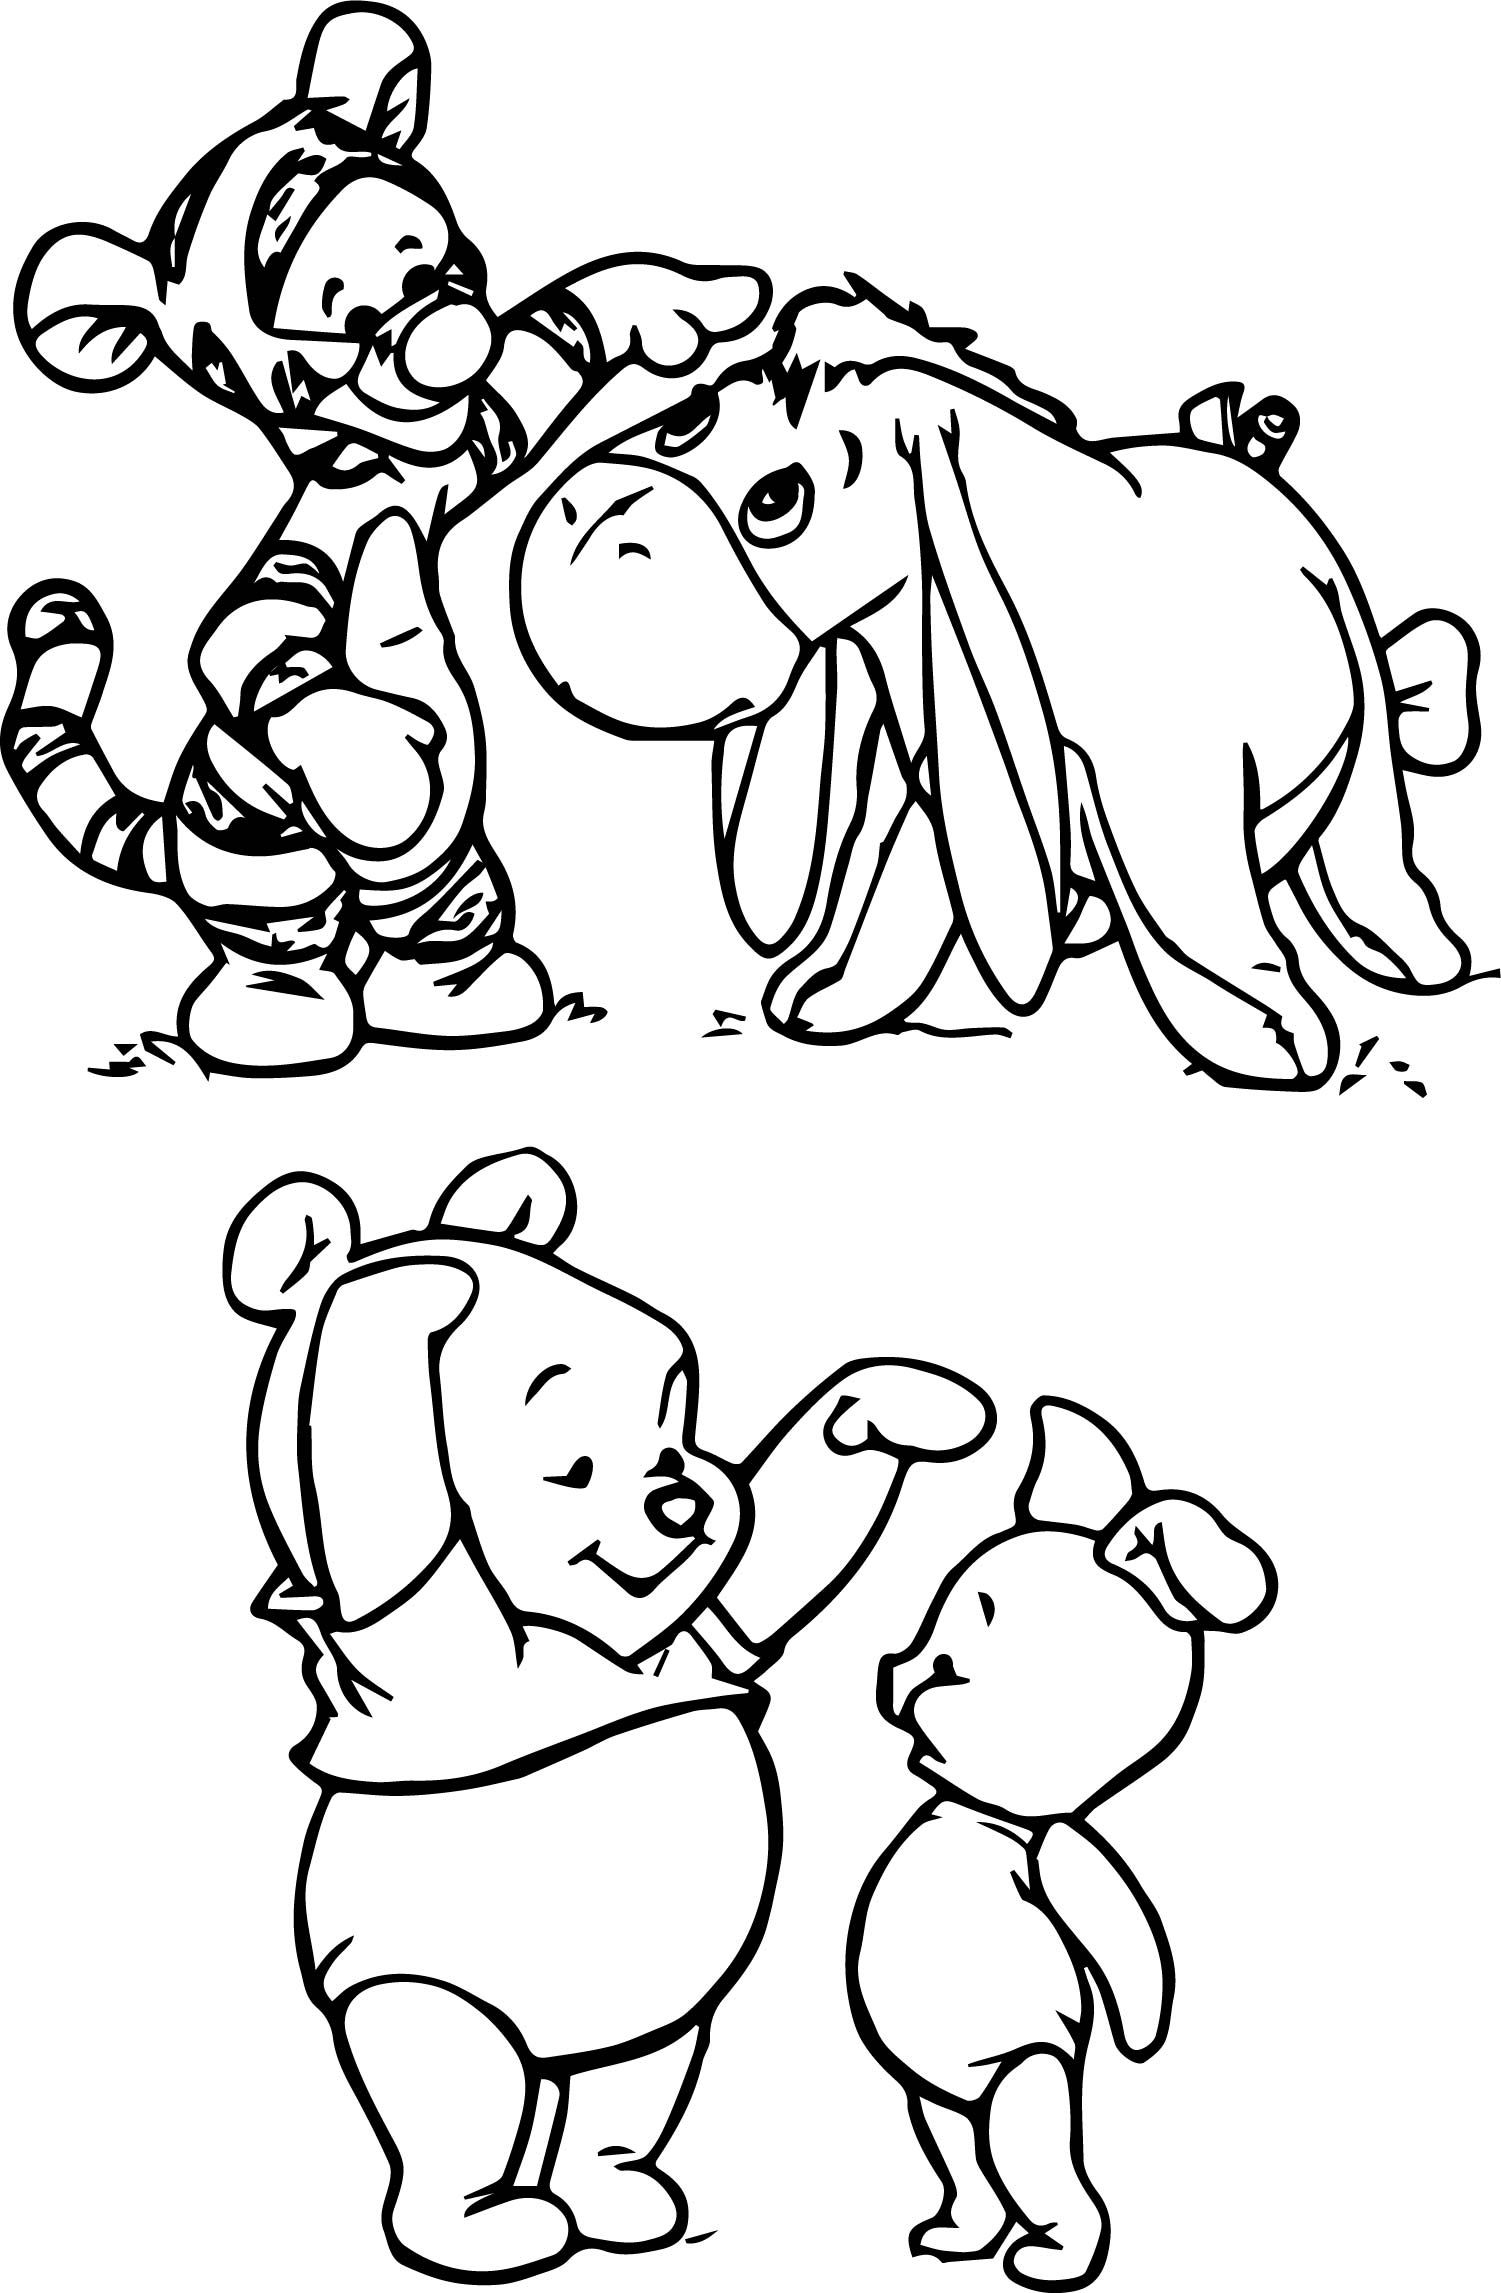 Winnie The Pooh Coloring Pages Cartoon Coloring Pages Winnie